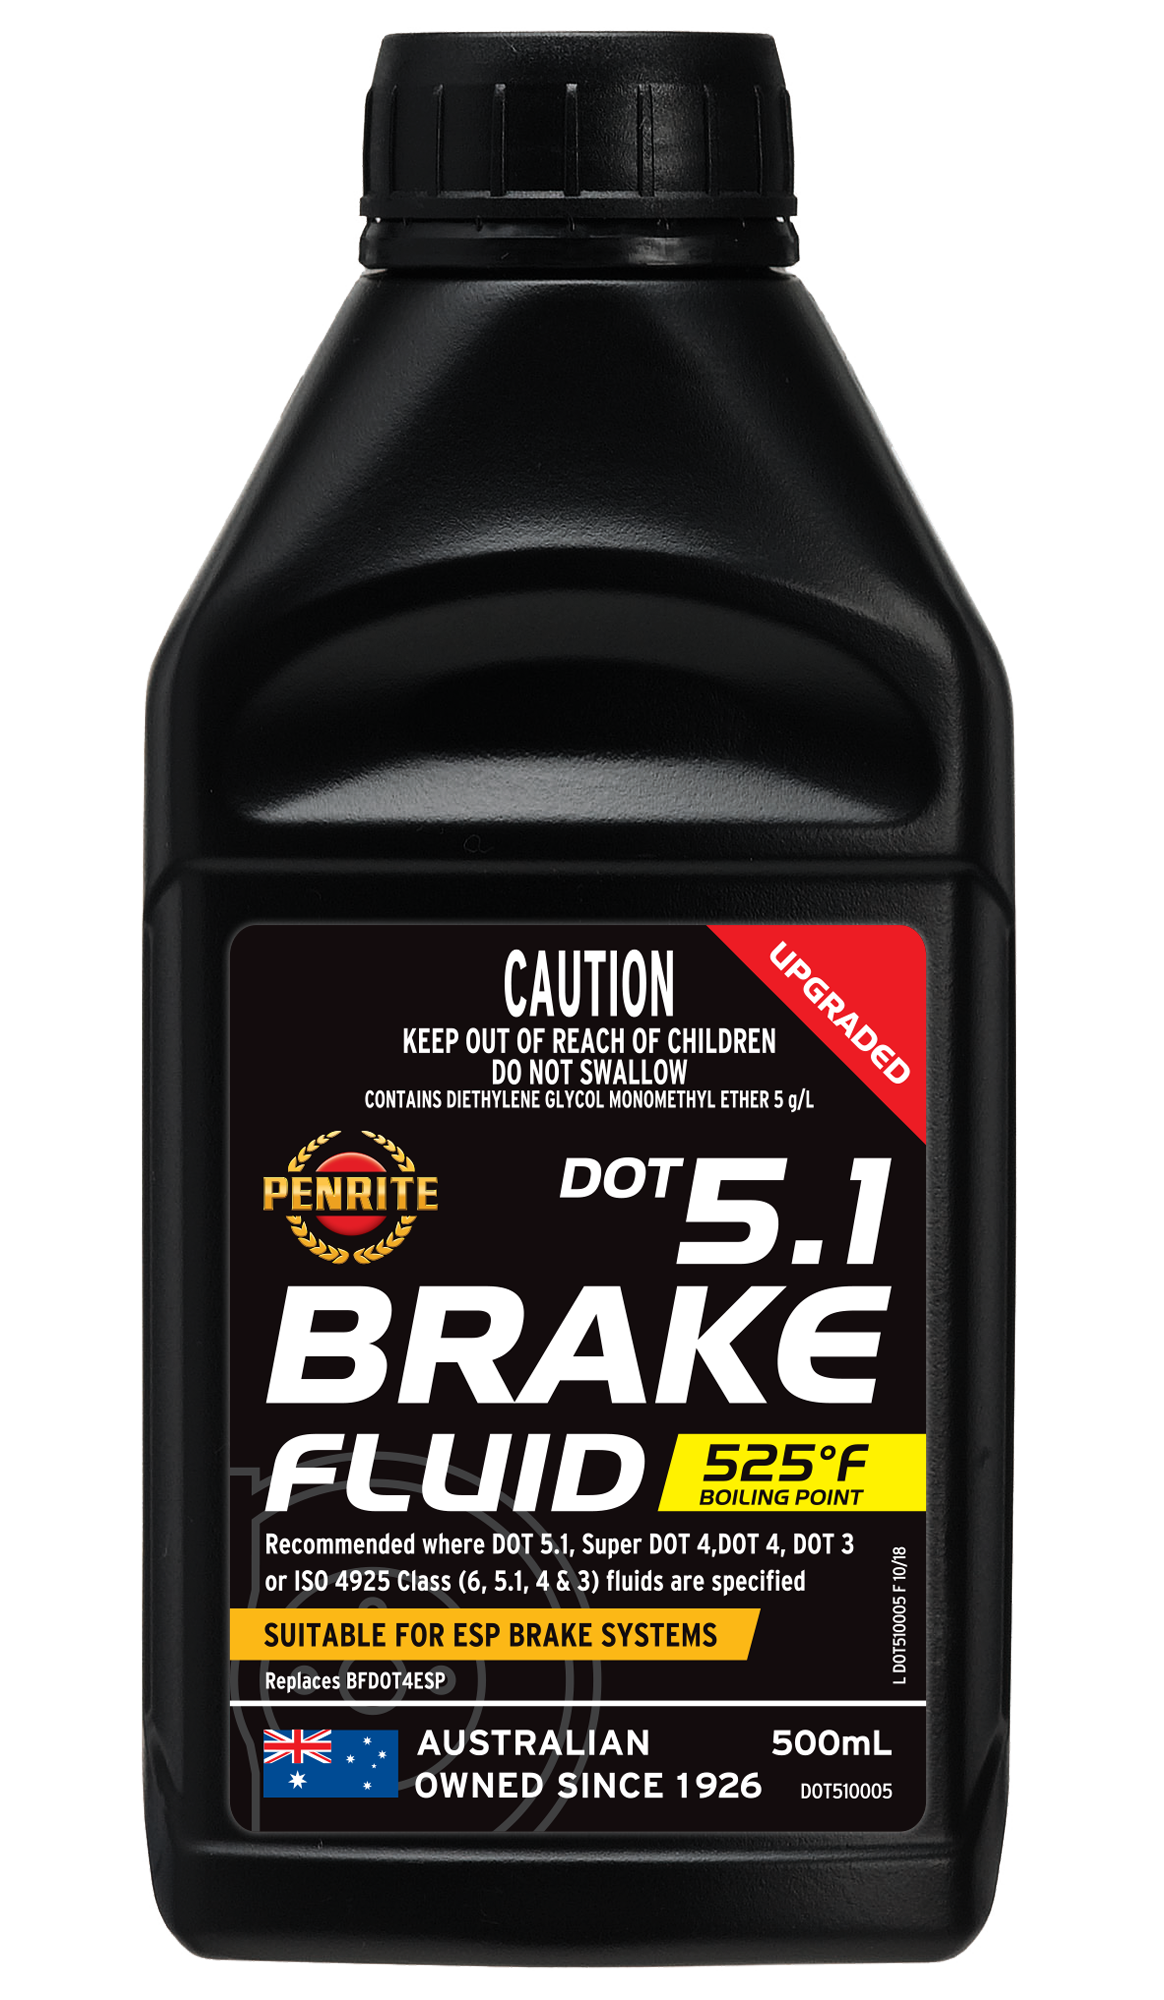 Dot 5 1 Brake Fluid >> Dot 5 1 Brake Fluid Penrite Oil